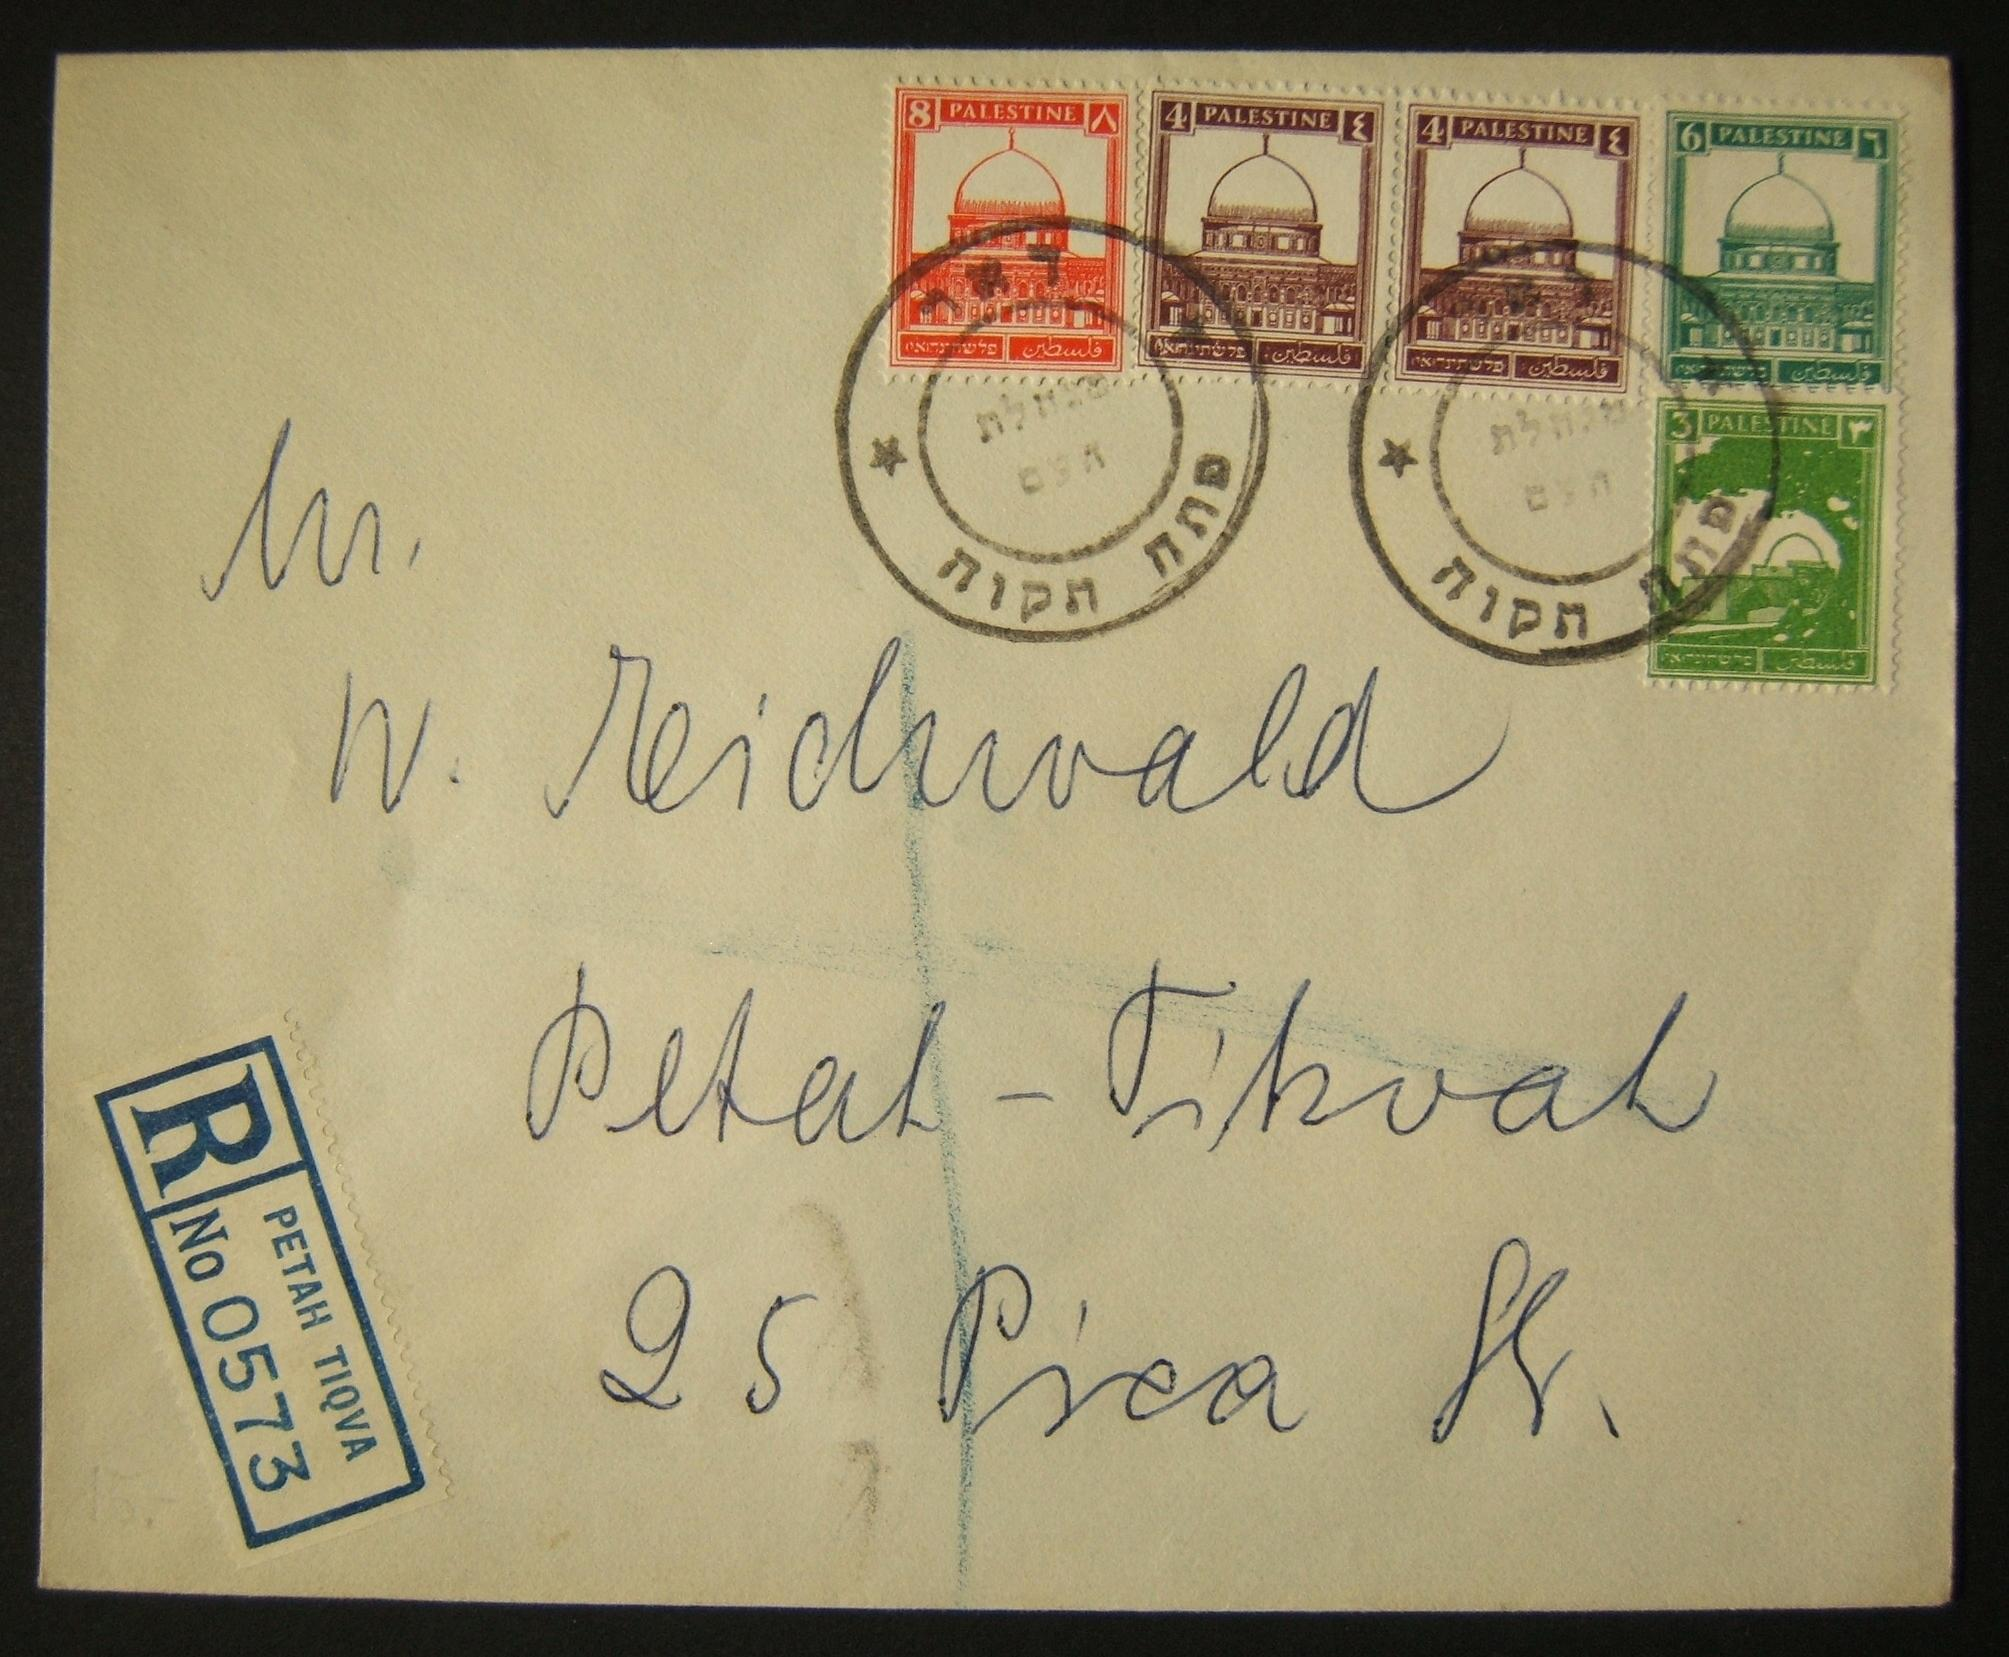 1948 Interim domestic mail: early May local PETAH TIQVA registered cover to Werner Eichwald (PT deputy postmaster) franked 25m at the period rate (10m letter + 15m registration) us